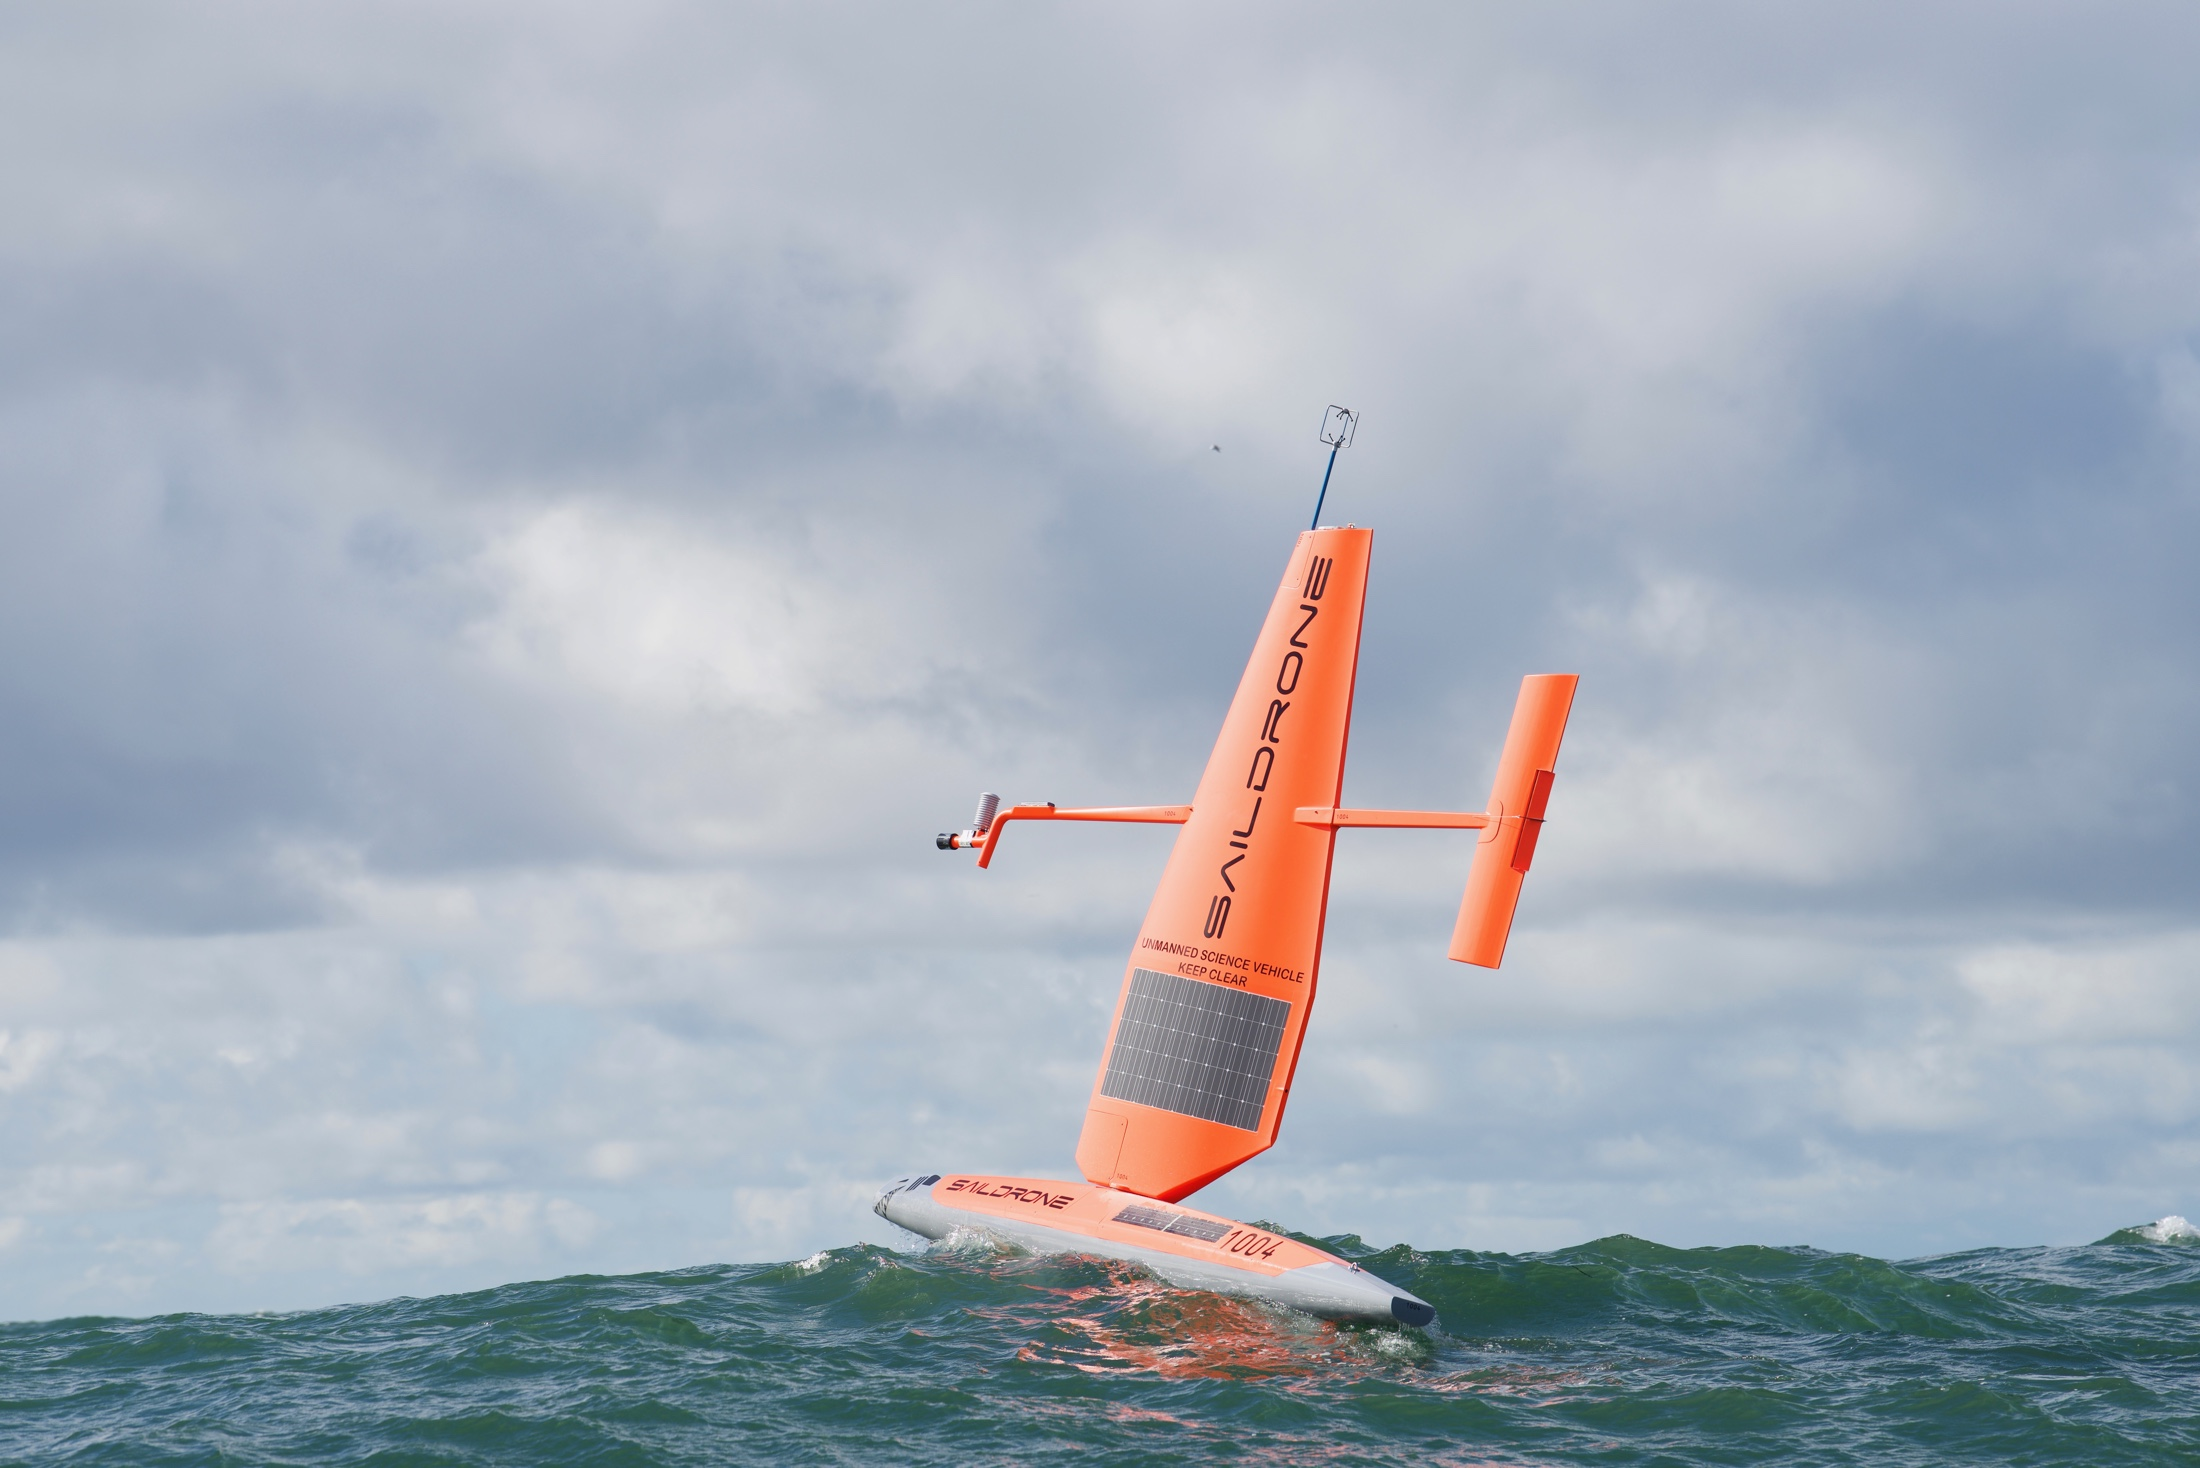 Saildrone: Press